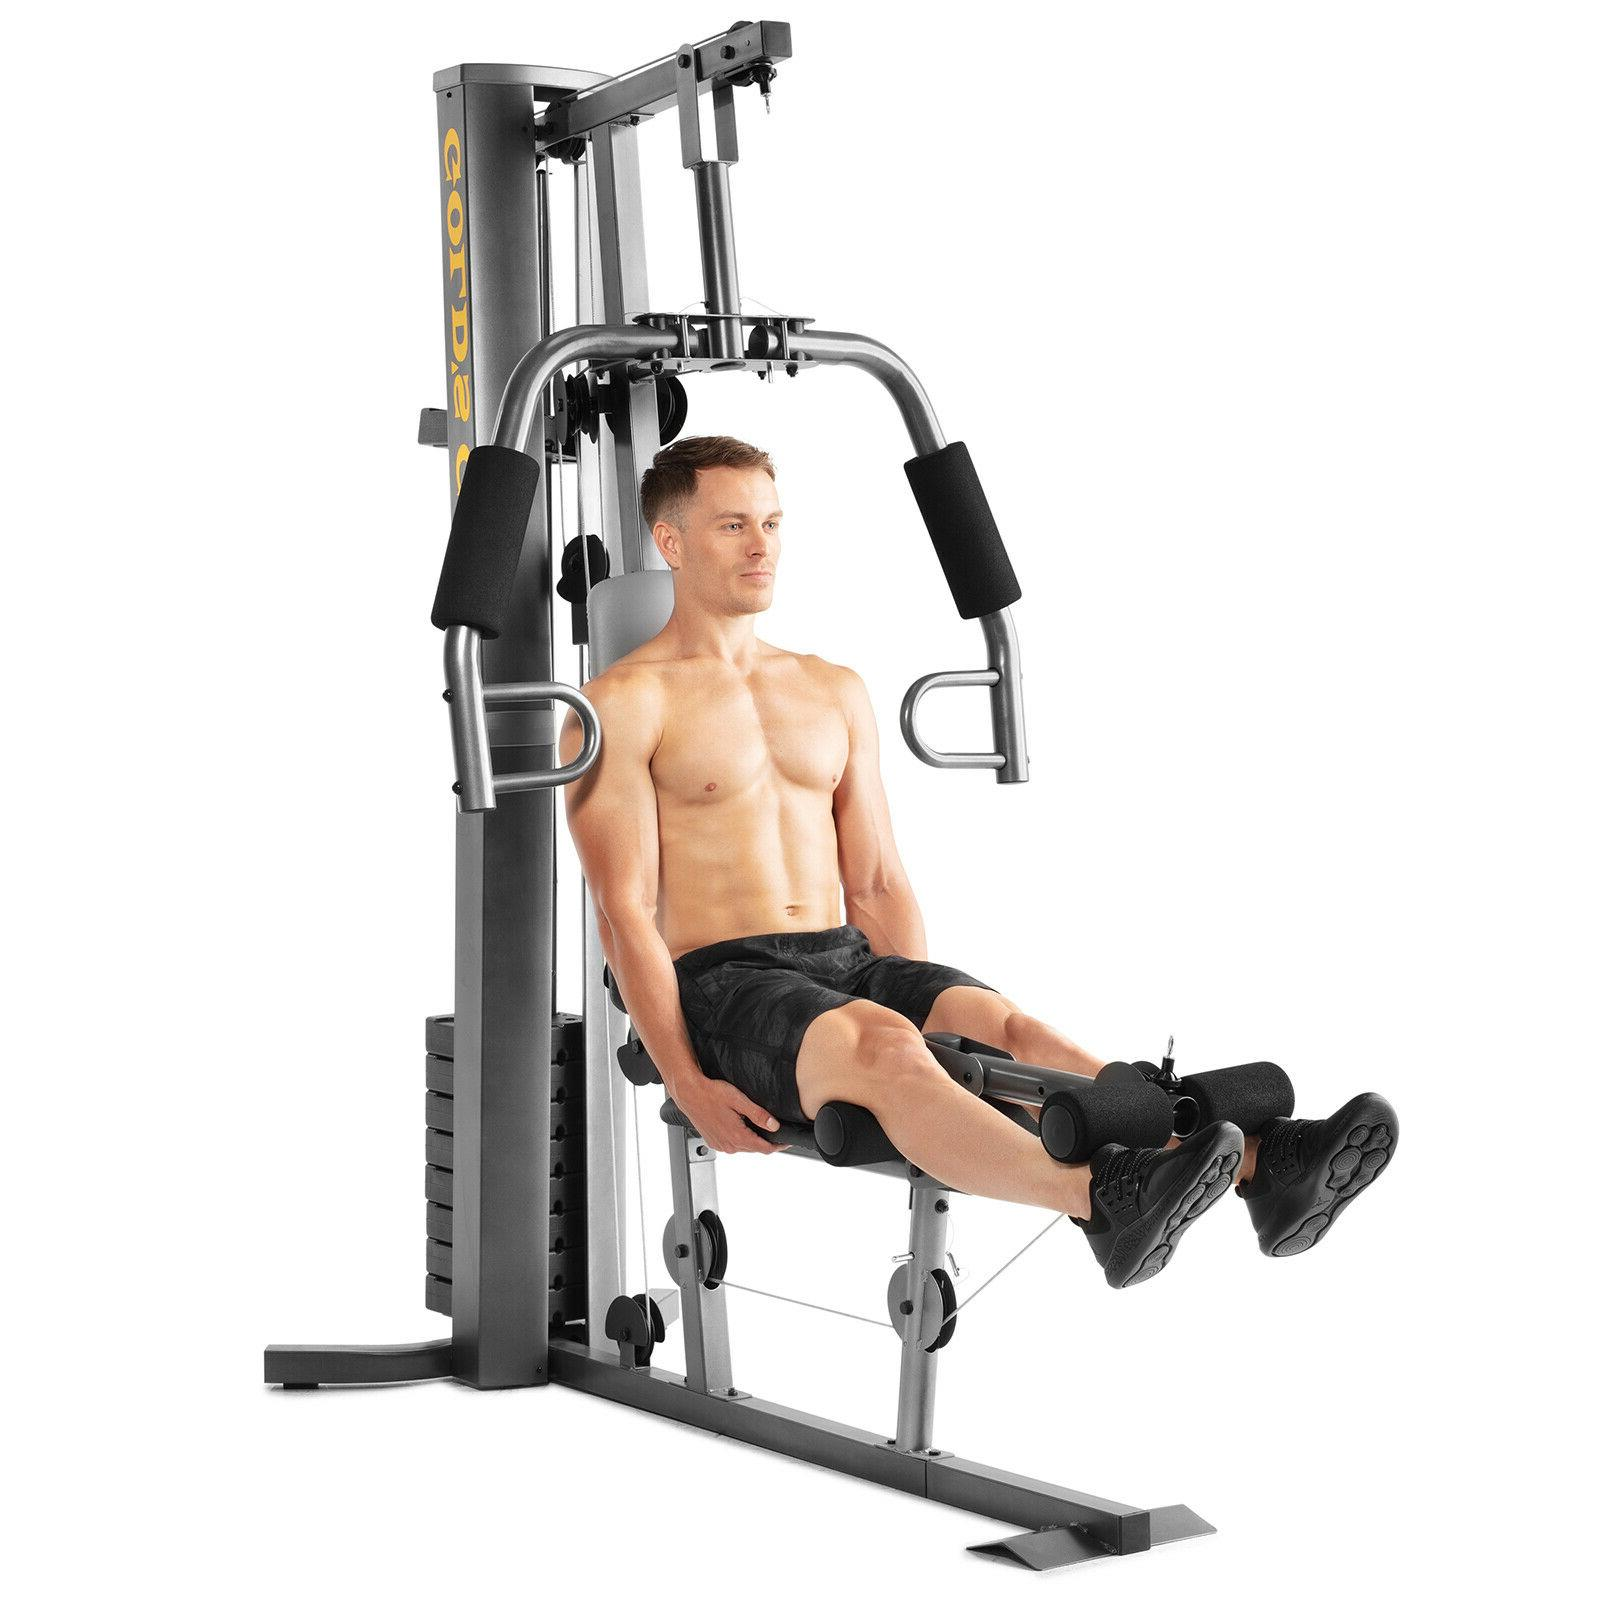 Home Training Exercise Fitness Machine Gym Workout